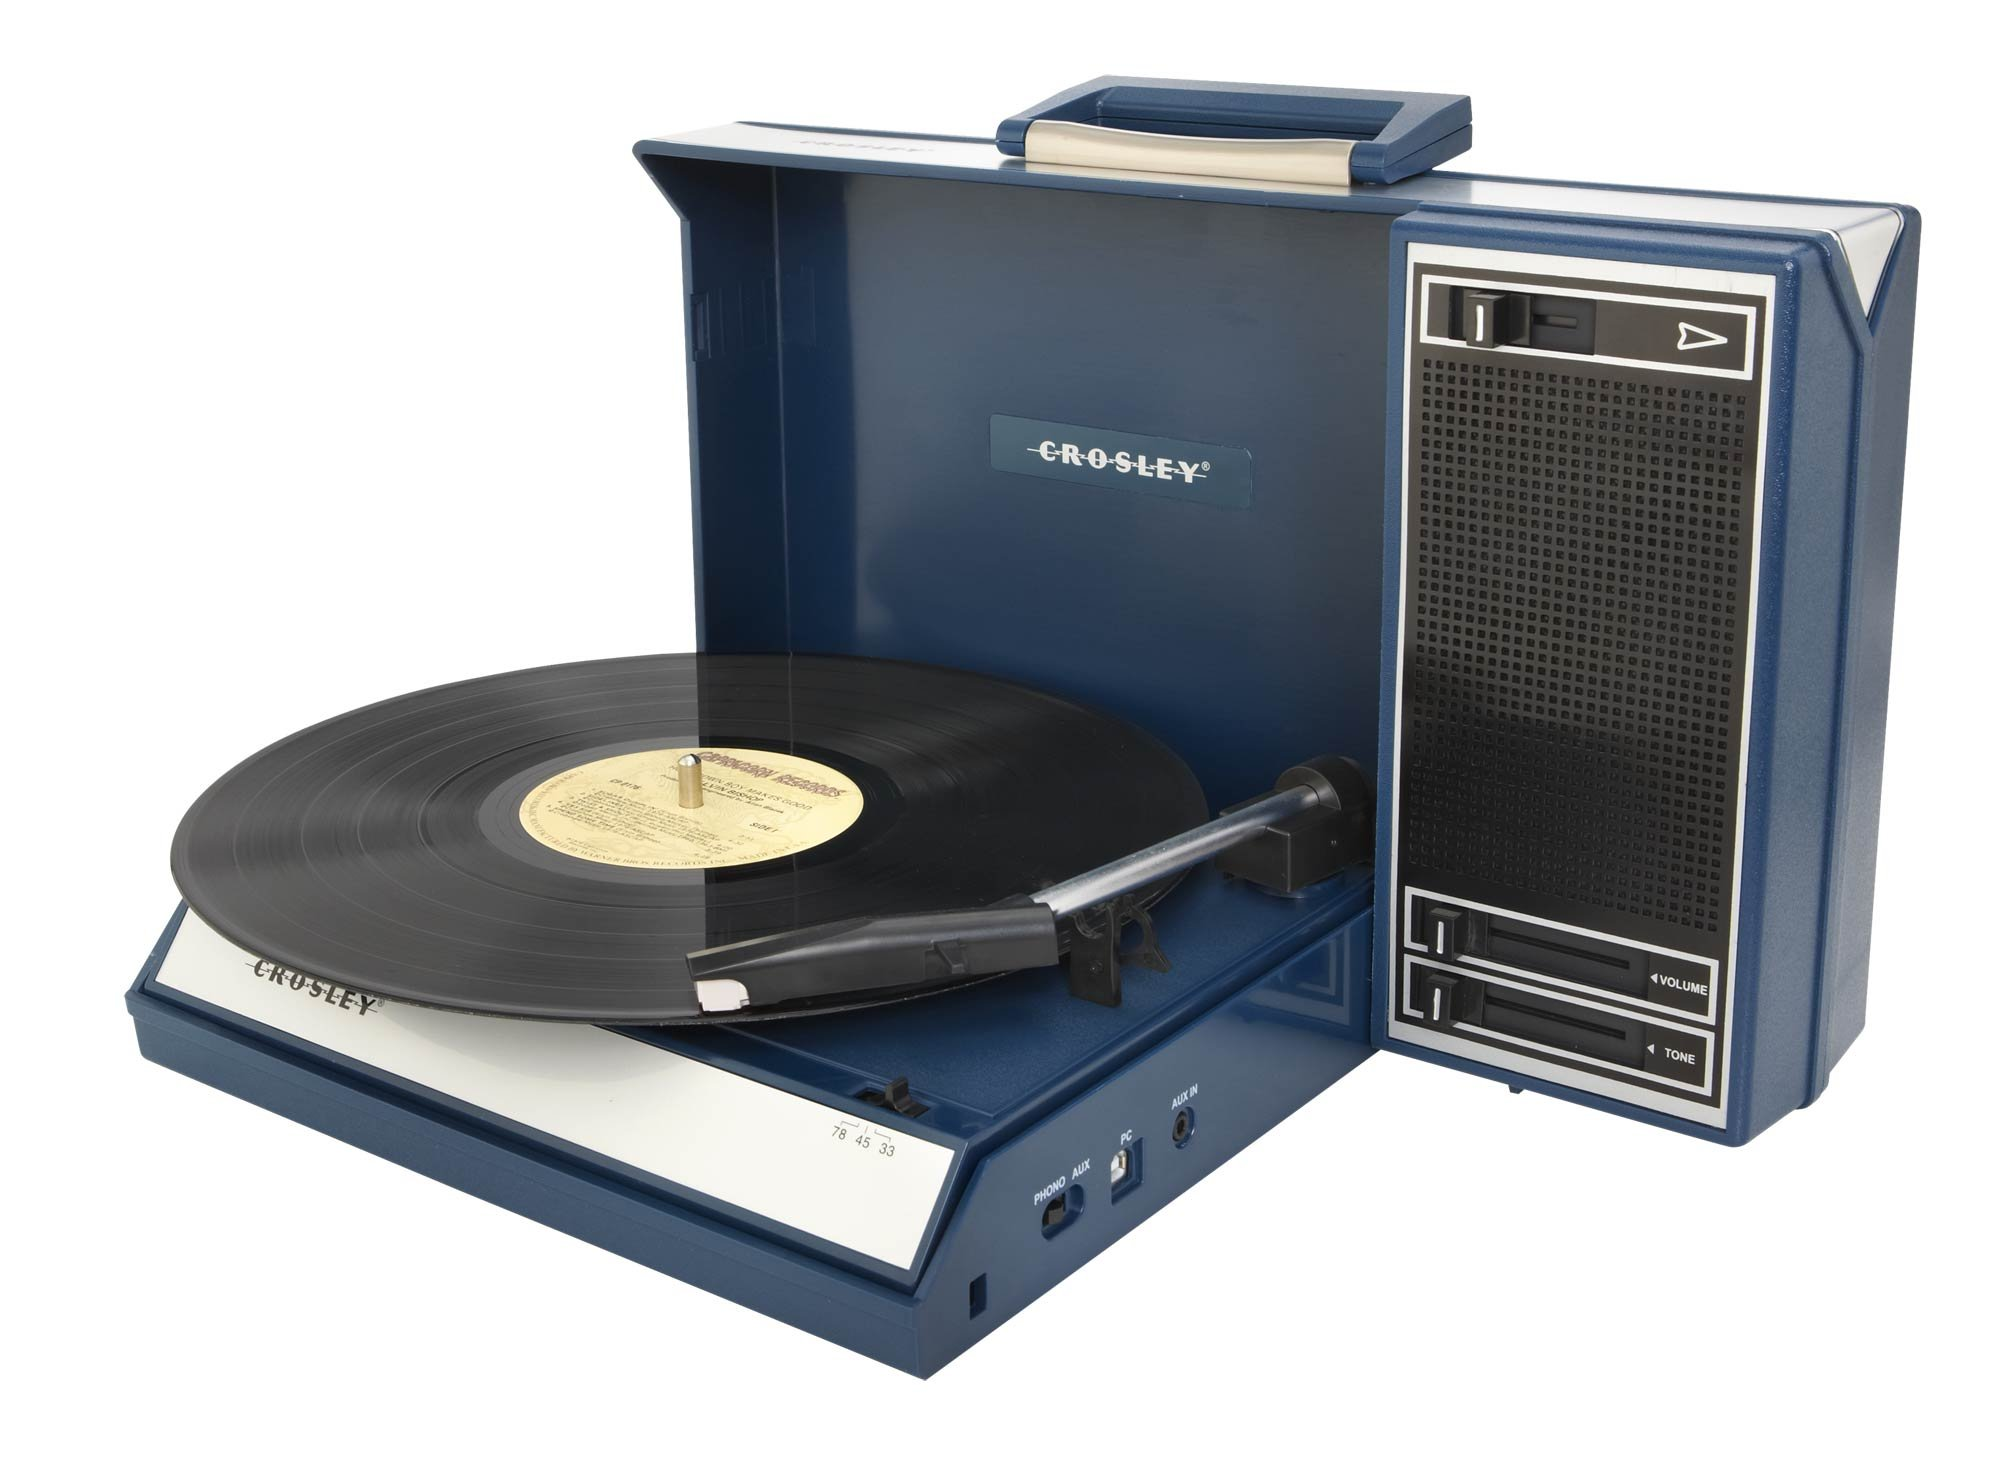 Crosley CR6016A-BL Spinnerette Portable USB Turntable with Software for Ripping and Editing Audio, Blue by Crosley